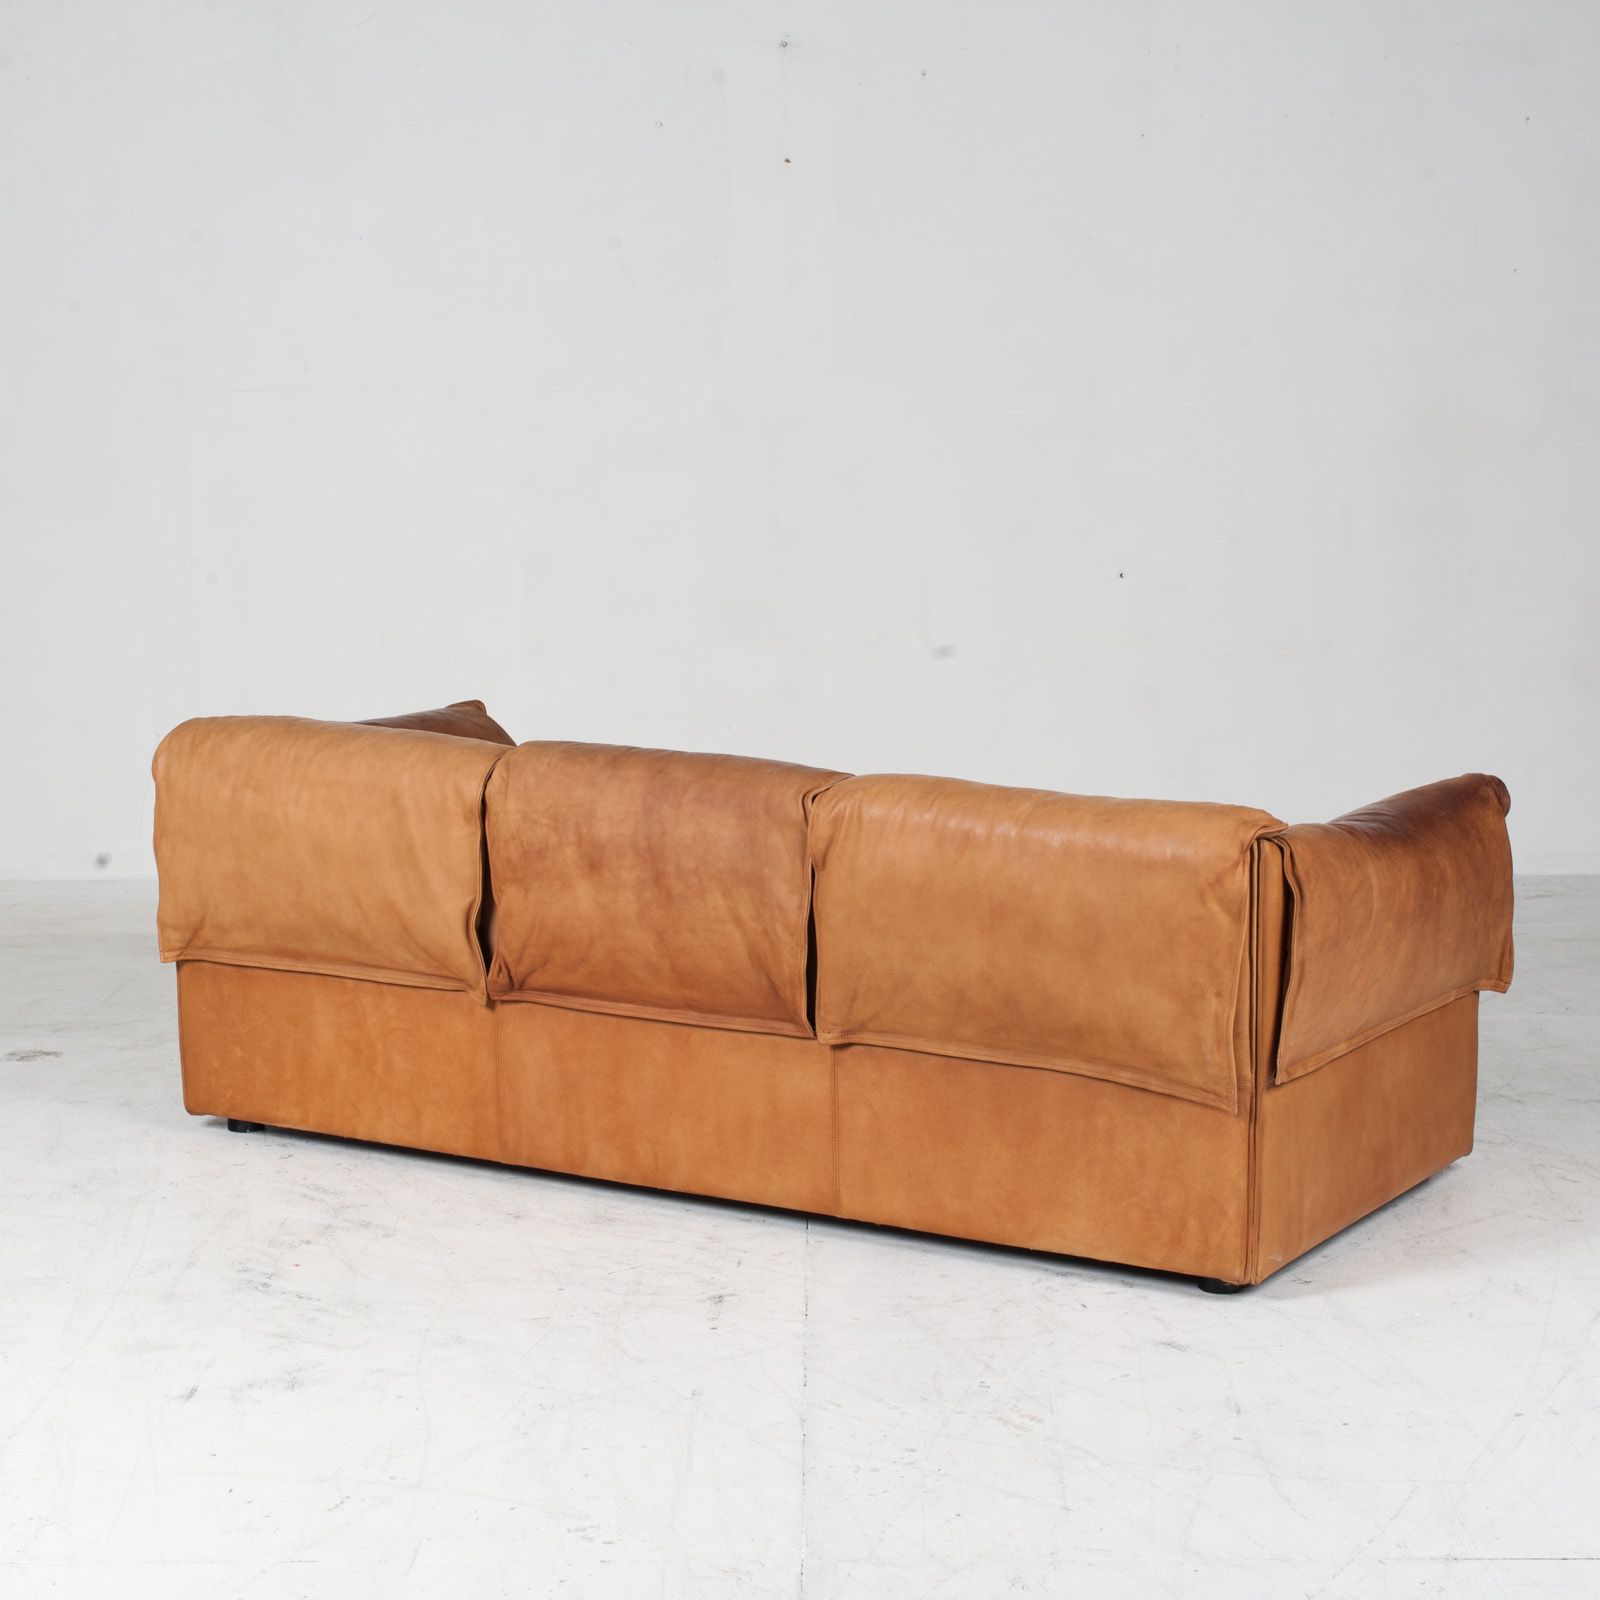 Model Lotus 3 Seat Sofa By Eilersen In Tan Leather 1970s Denmark 07